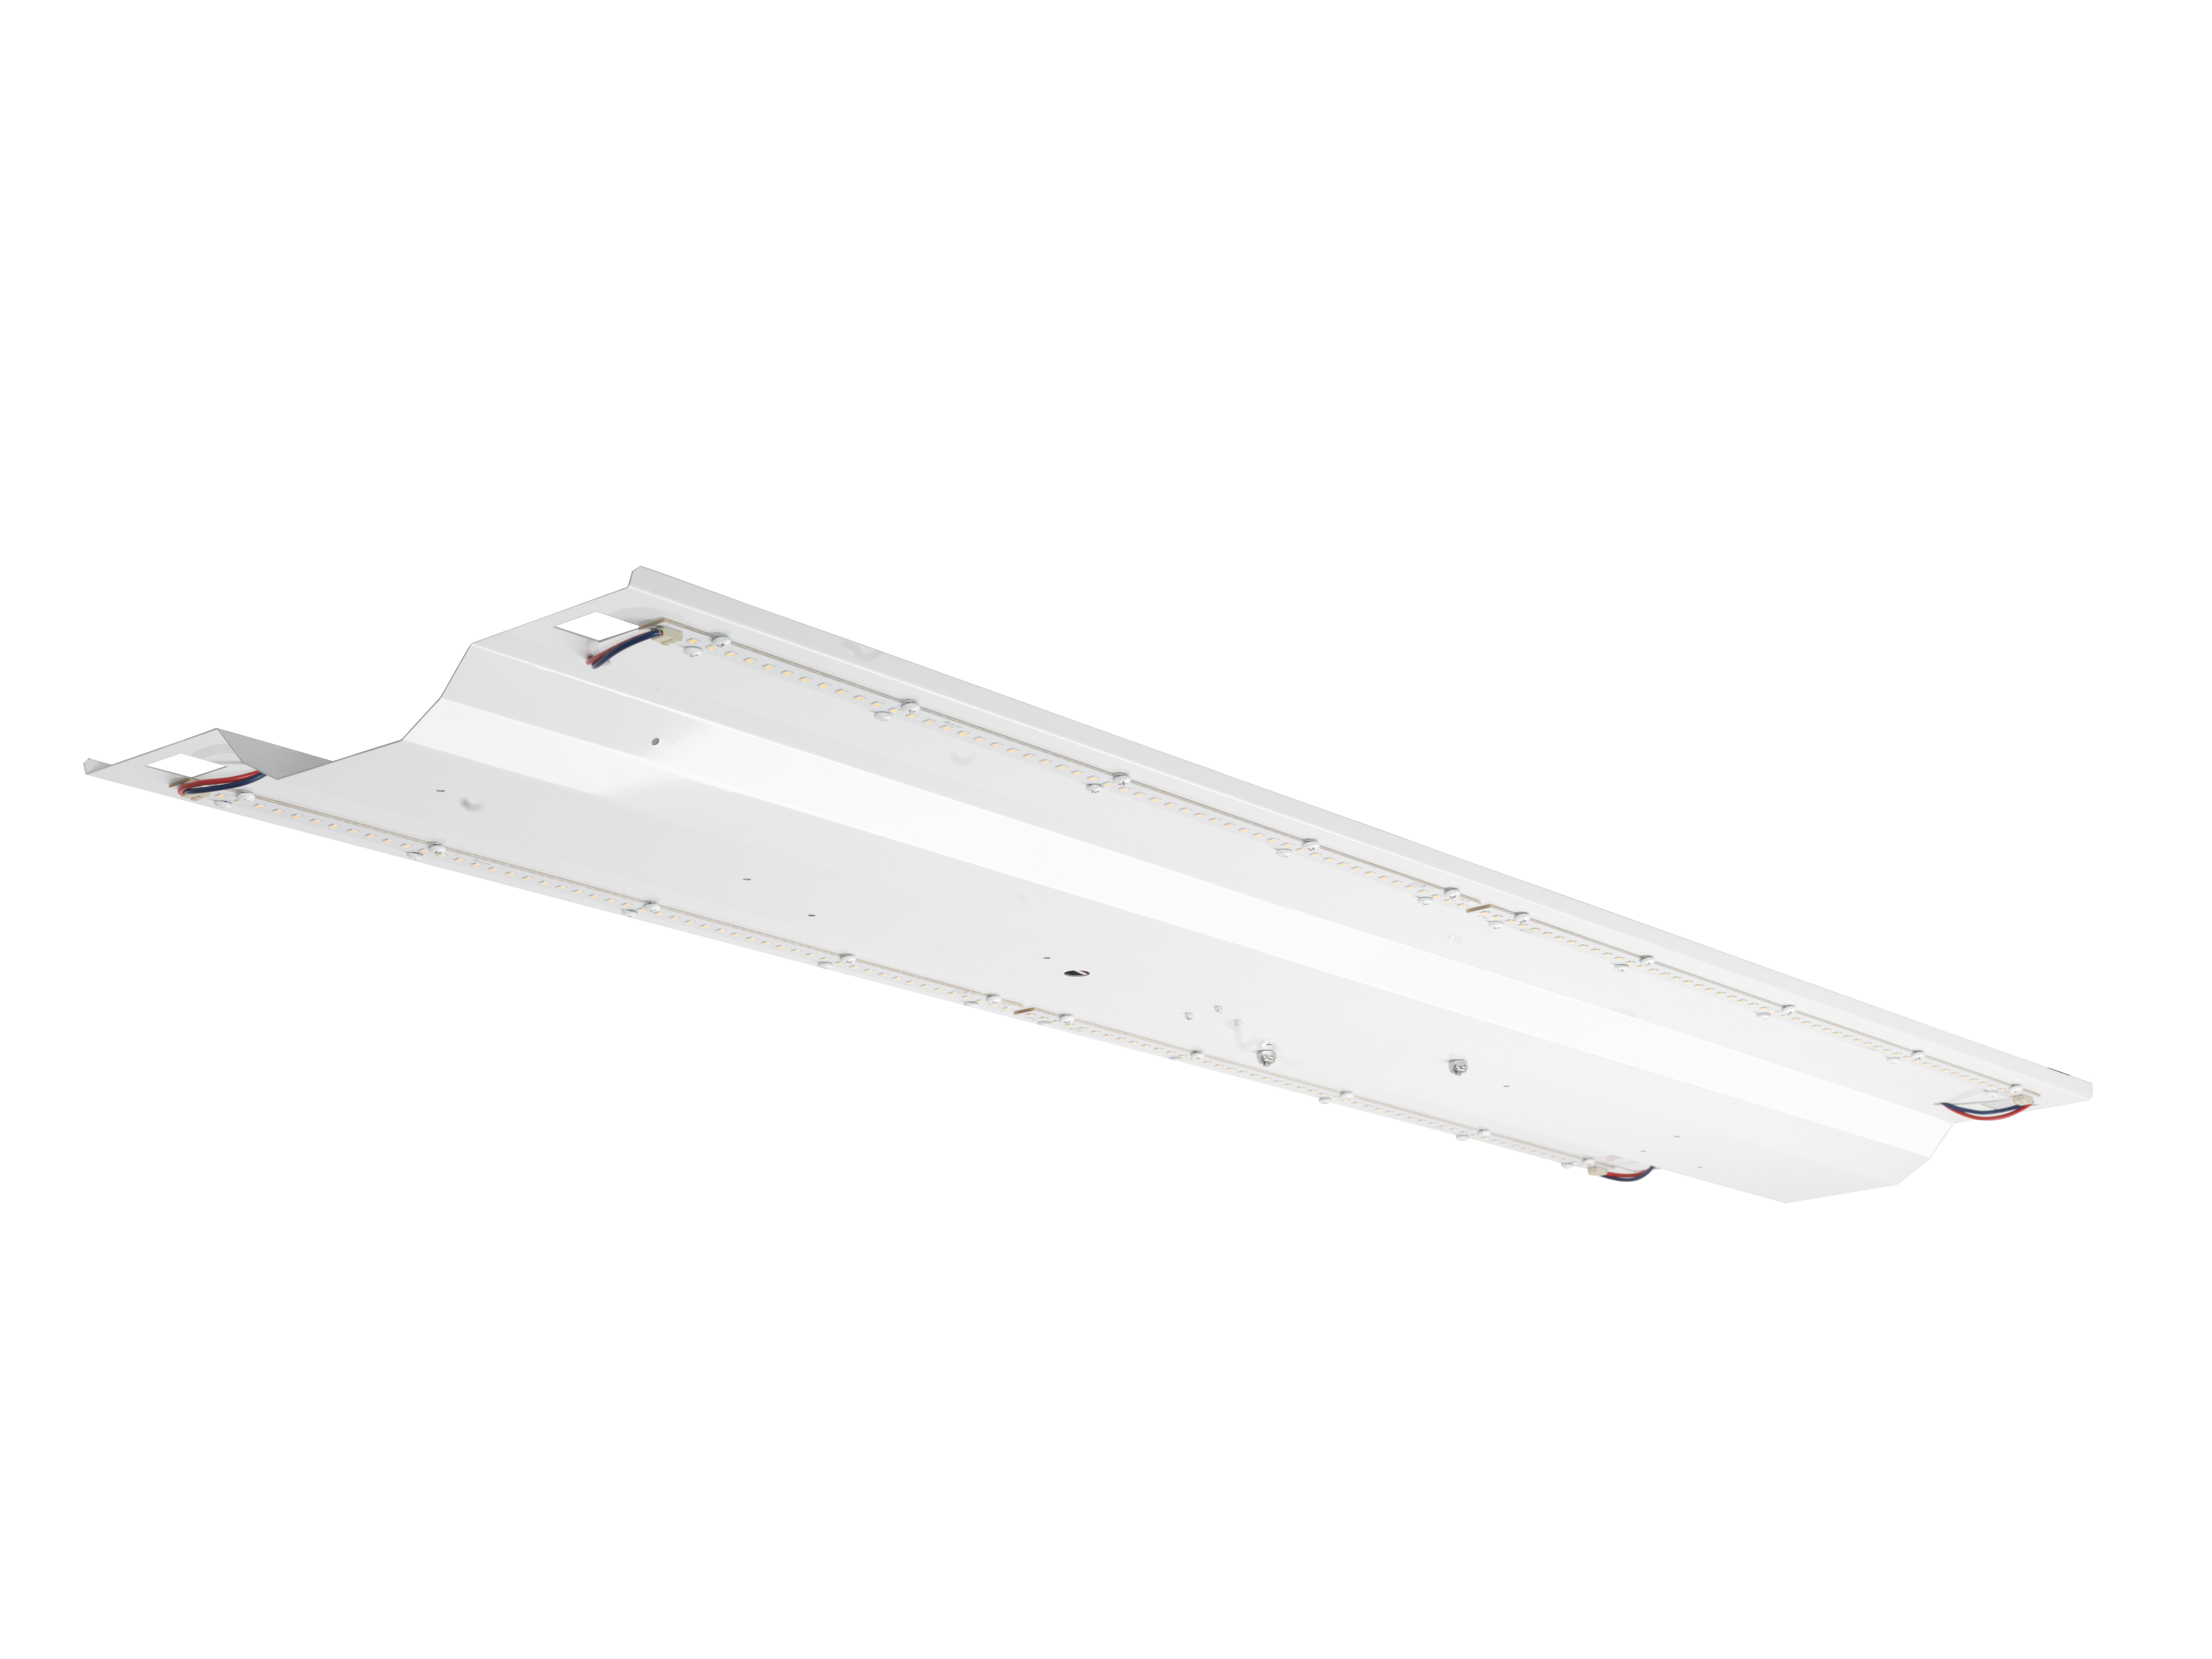 Led Conversion Kit Sets New Bar For Efficiency Business Wire